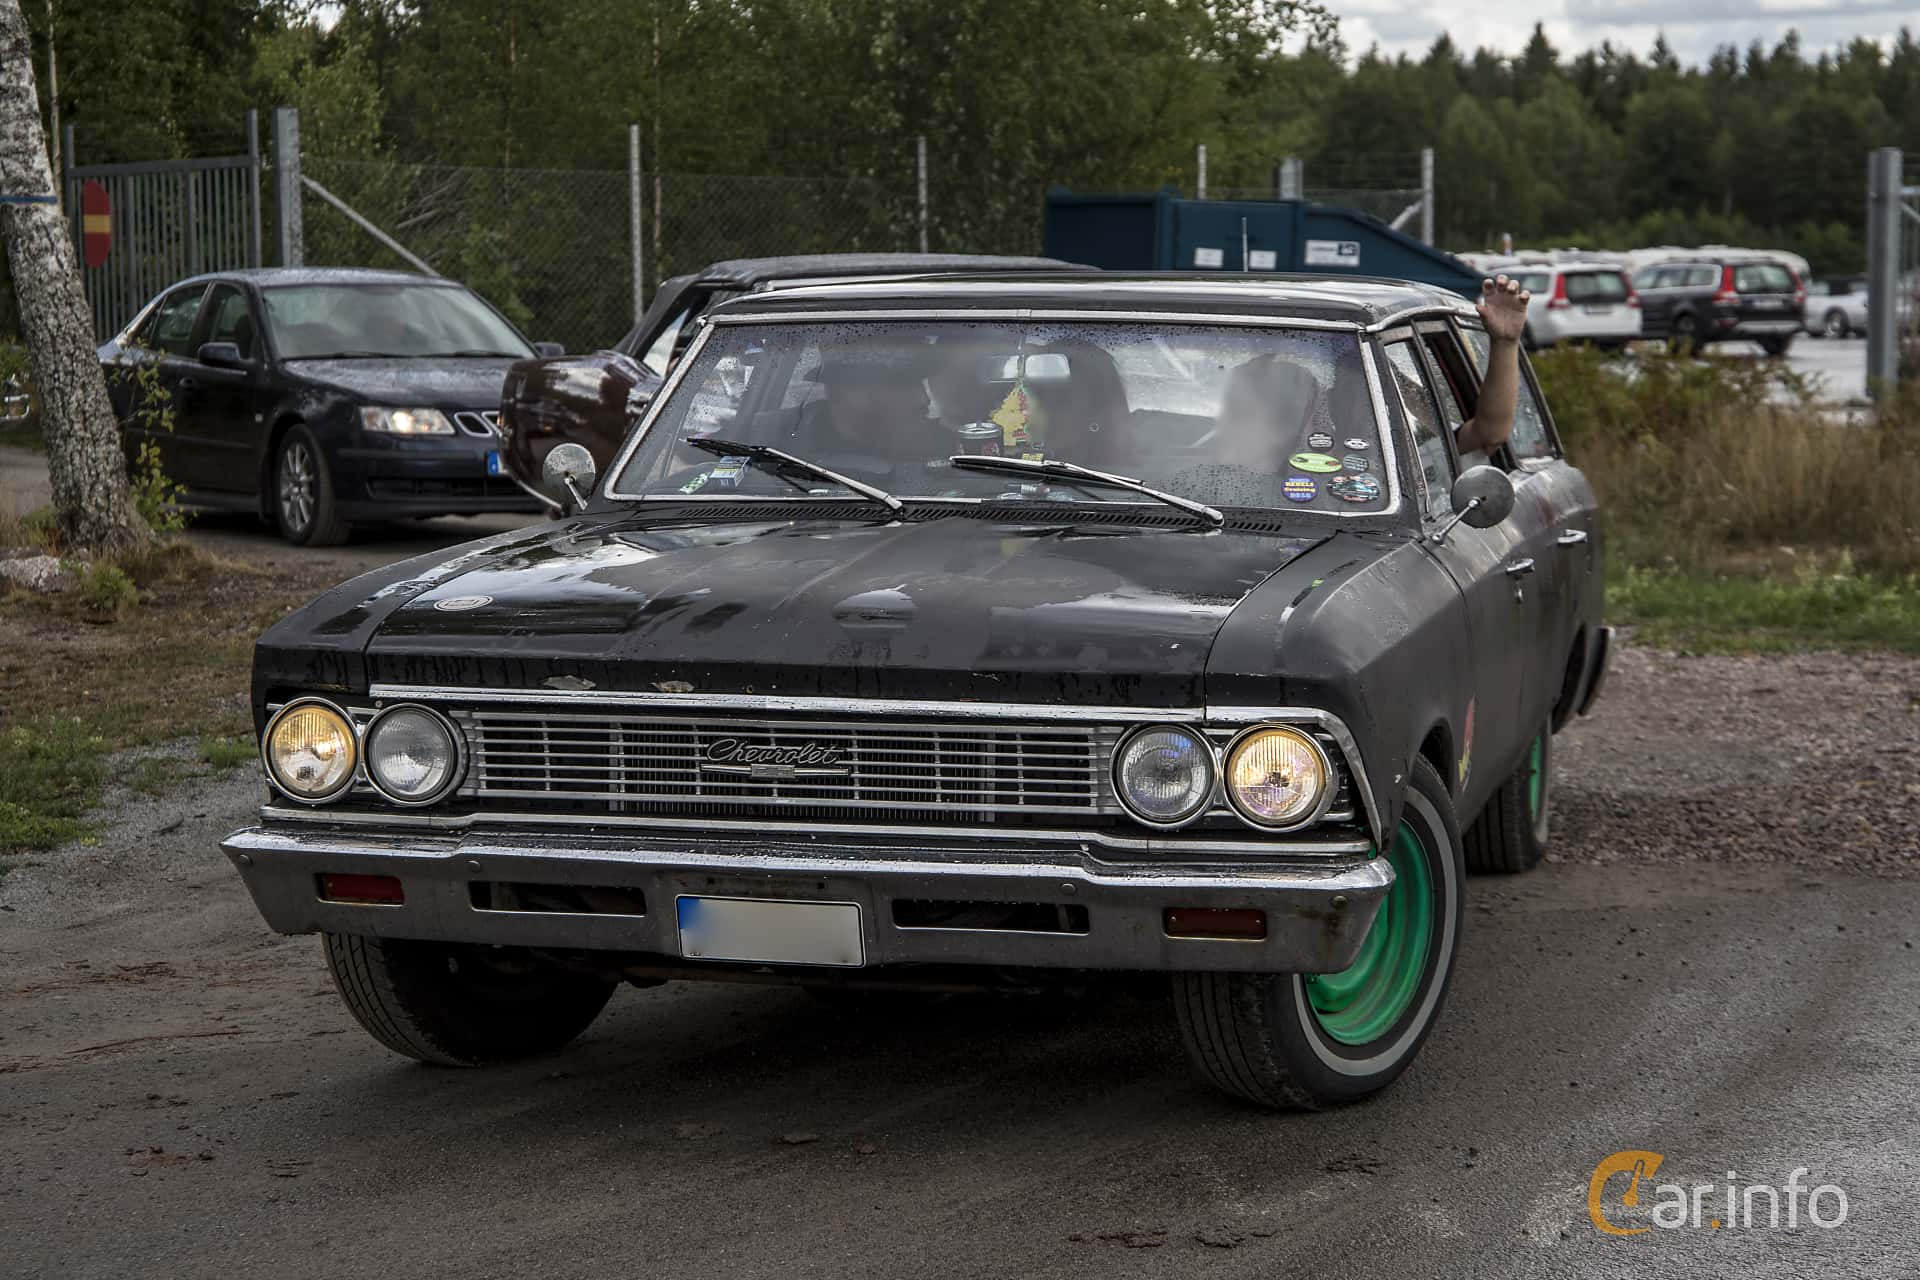 3 Images Of Chevrolet Chevelle Malibu Station Wagon 38 Powerglide 1966 Front Side 142ps At